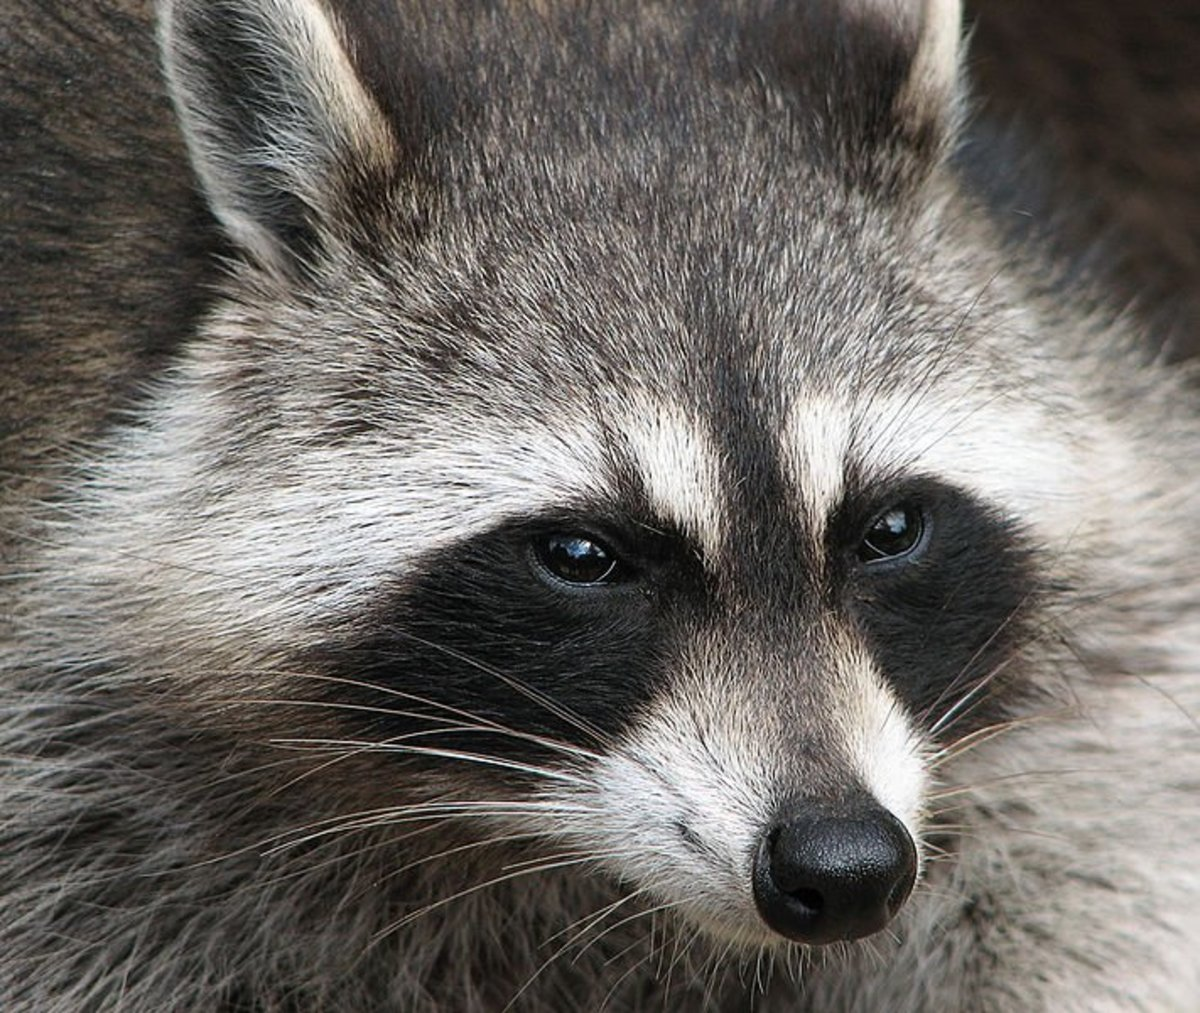 How to Get Rid of Raccoons for Good